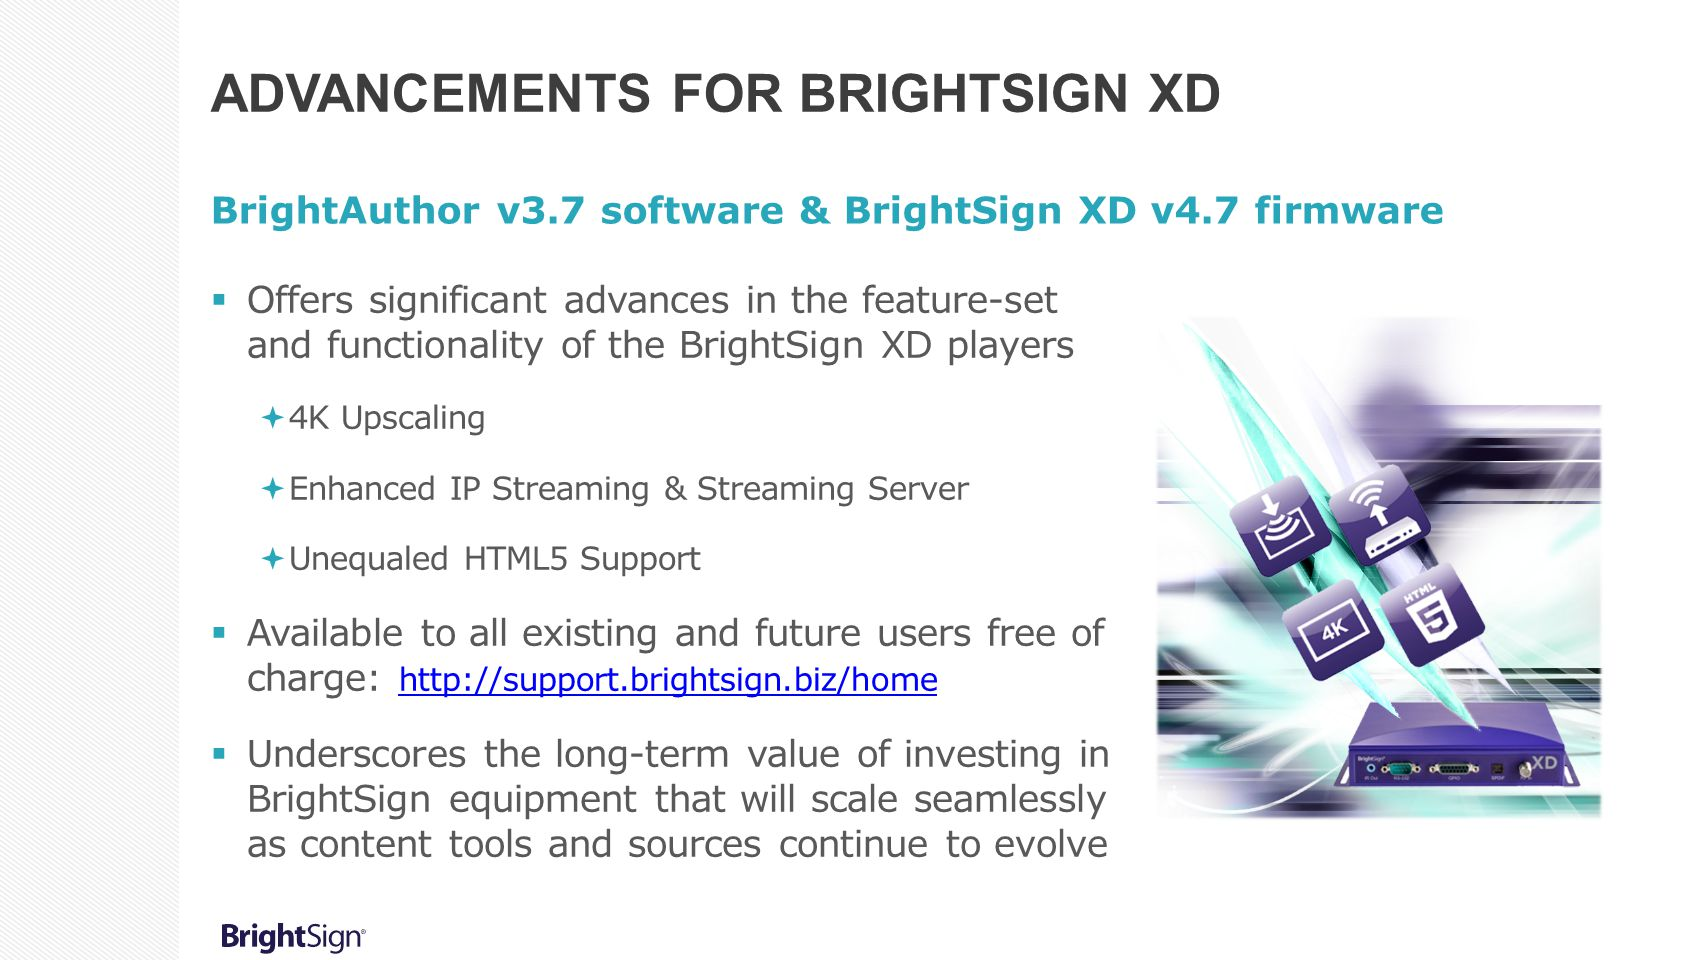 BrightAuthor v3 7 software and BrightSign XD v4 7 firmware